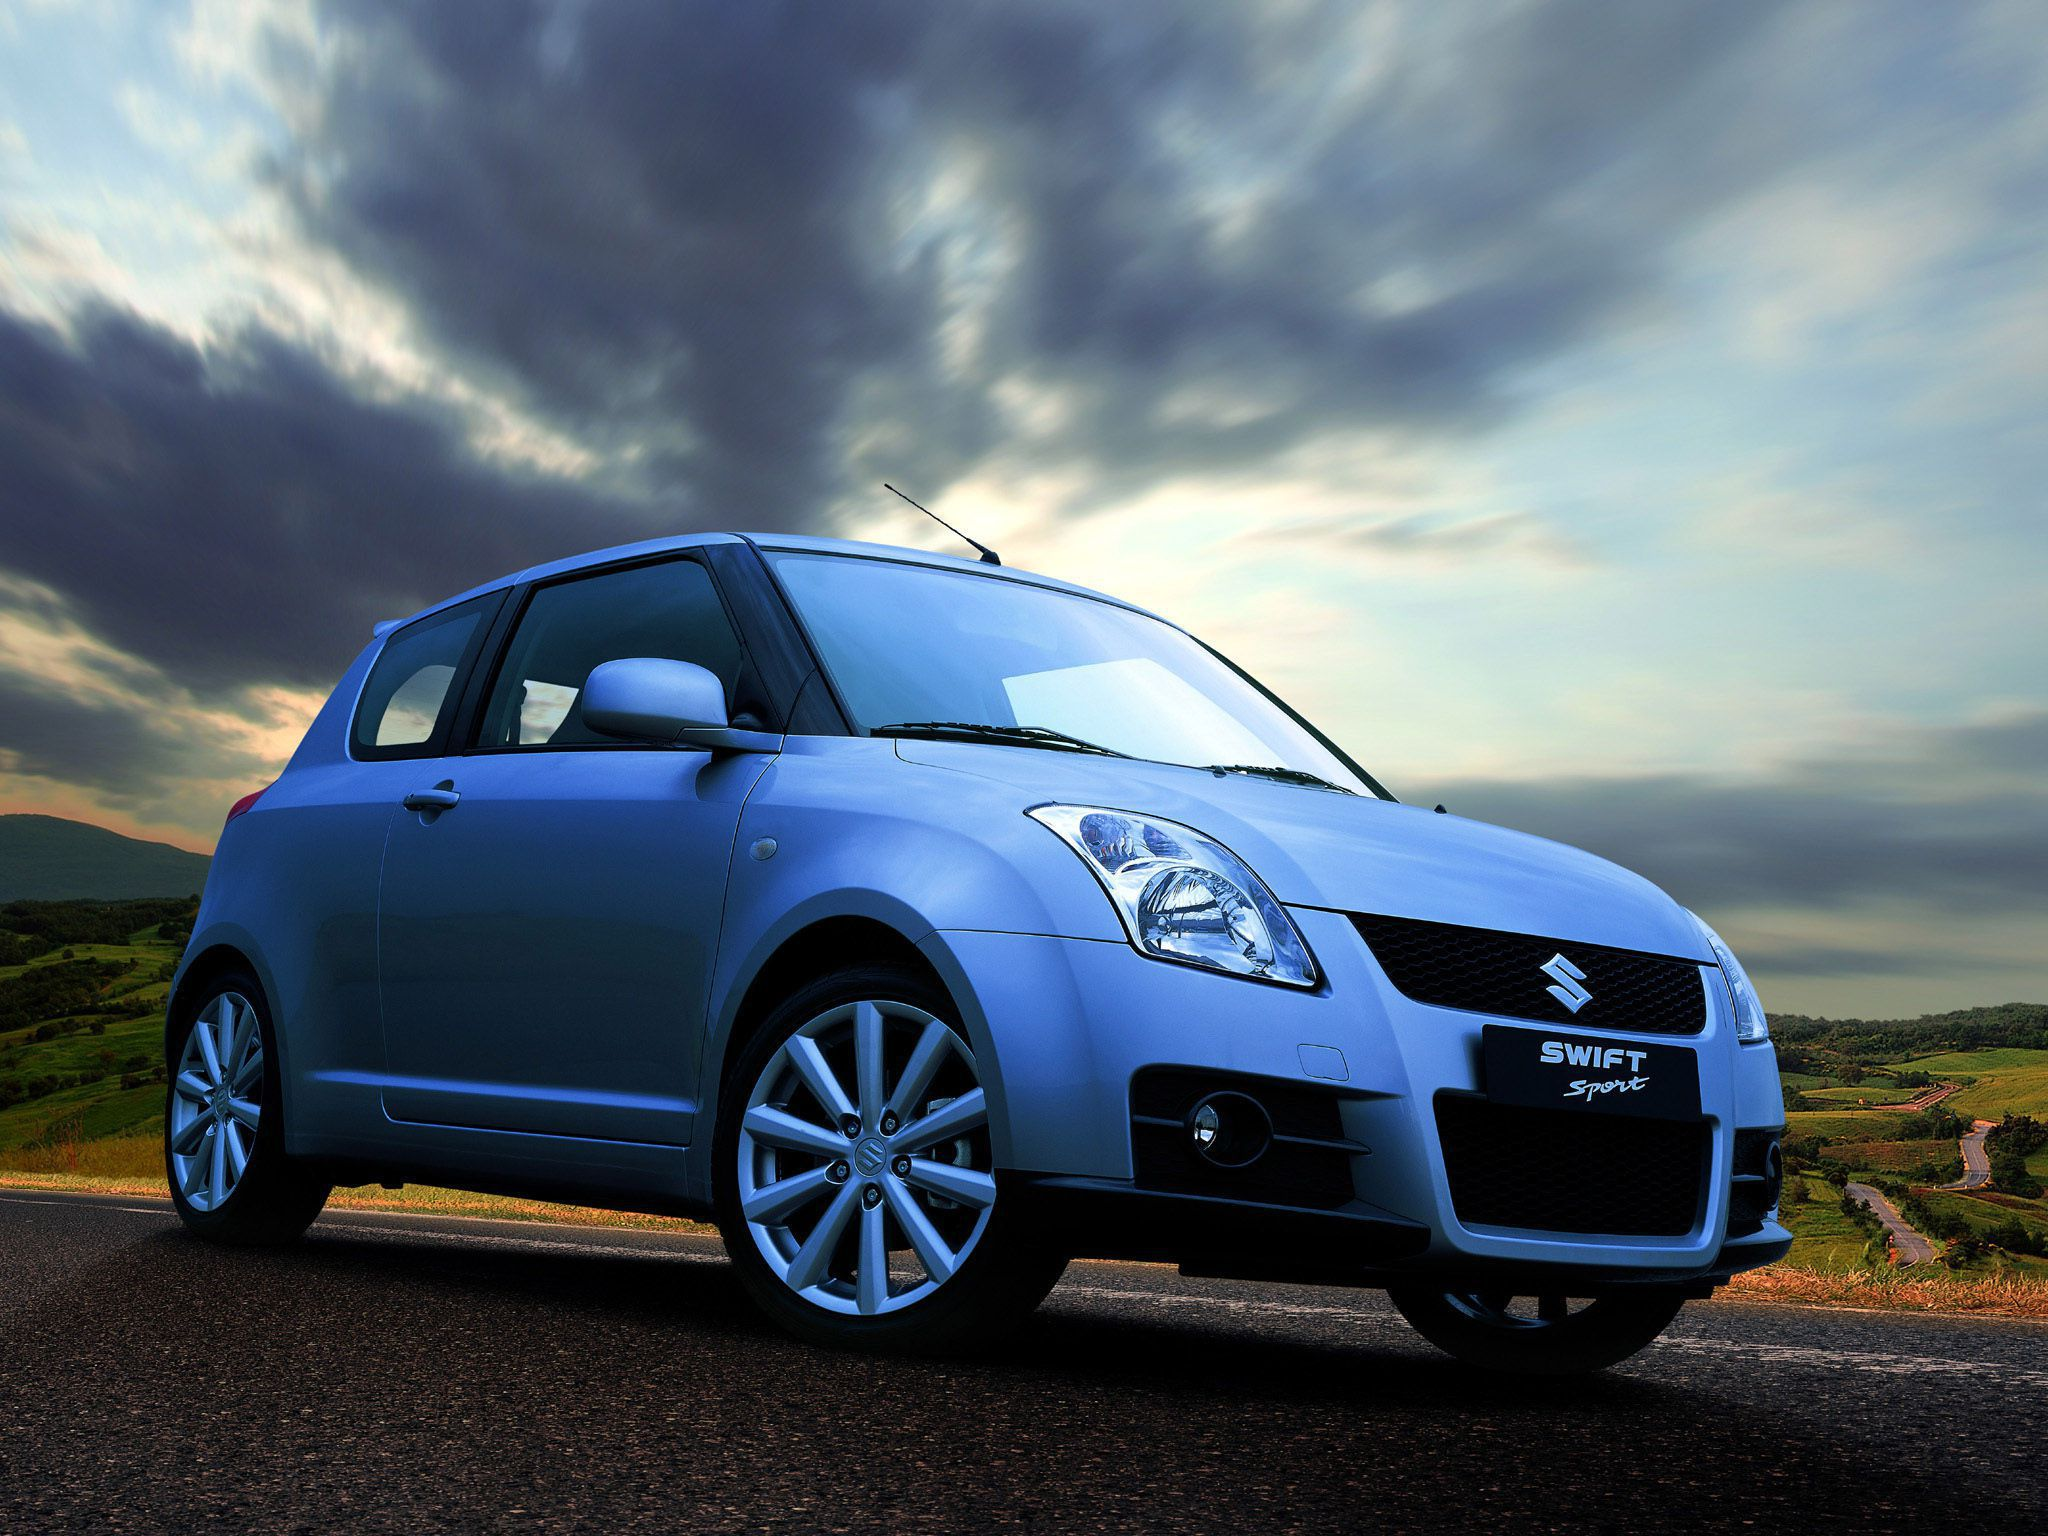 suzuki swift sport wallpapers images photos pictures backgrounds. Black Bedroom Furniture Sets. Home Design Ideas